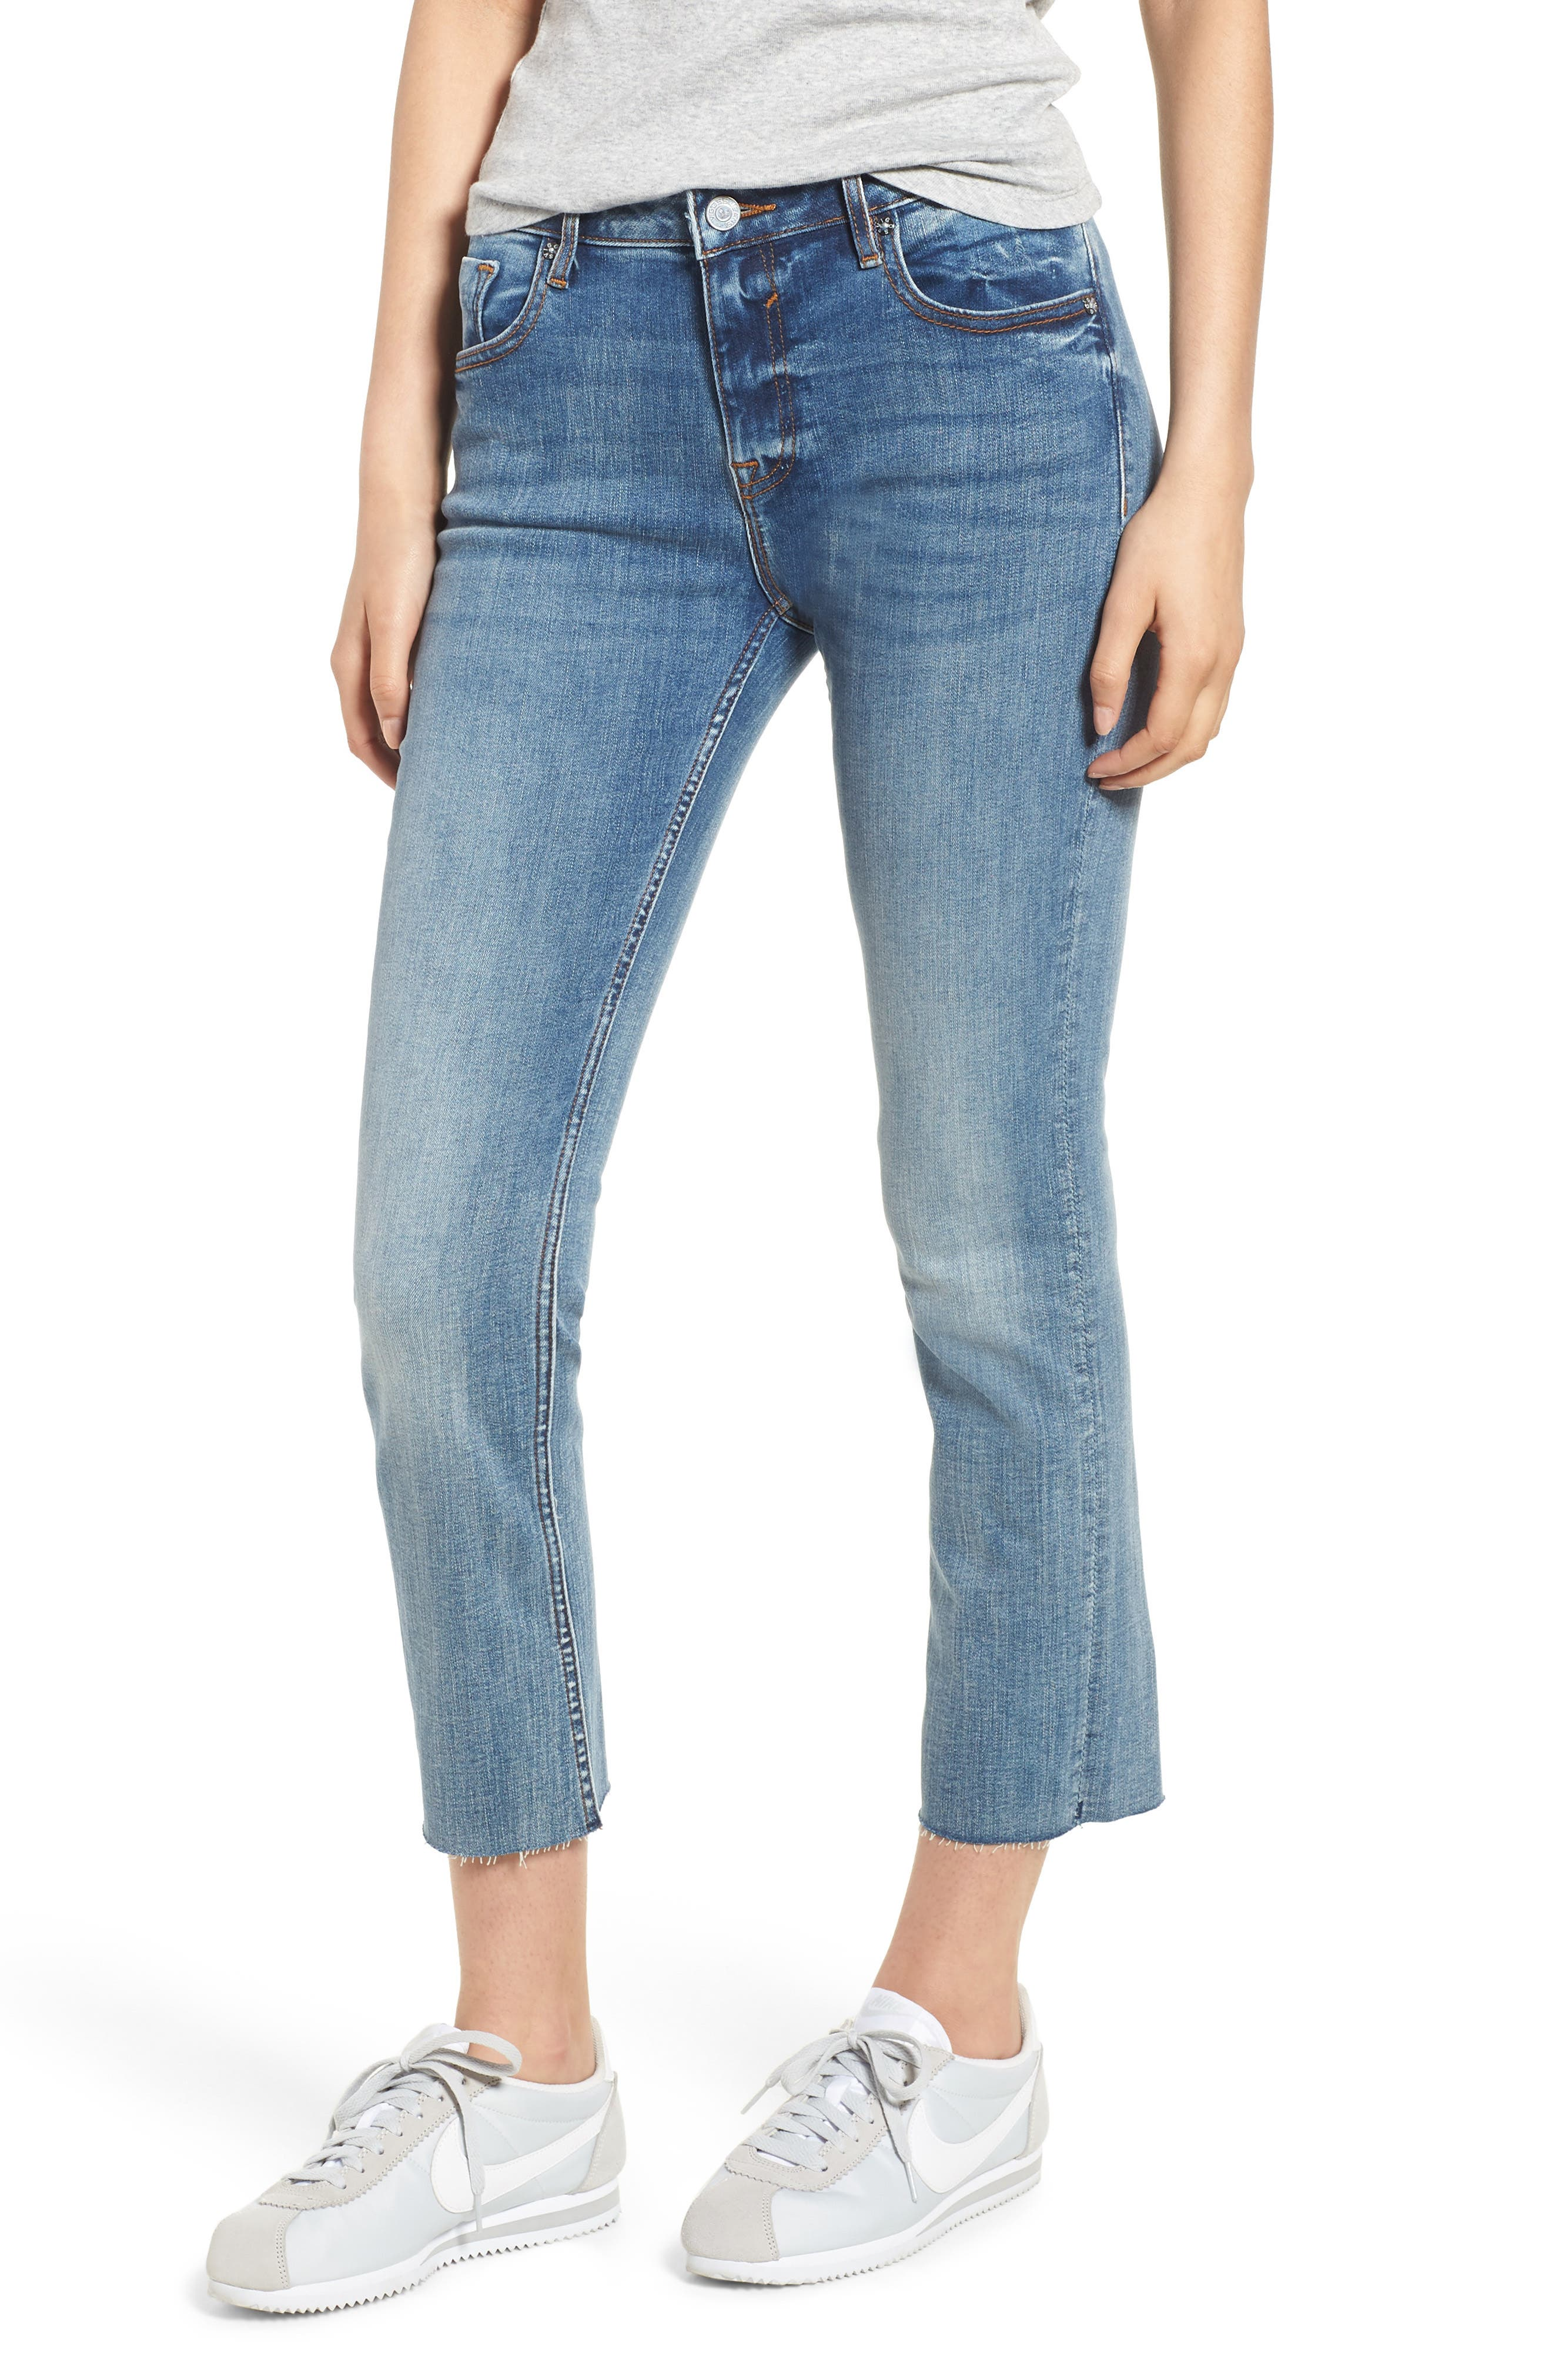 Jagger Crop Straight Leg Jeans,                         Main,                         color, Med Wash